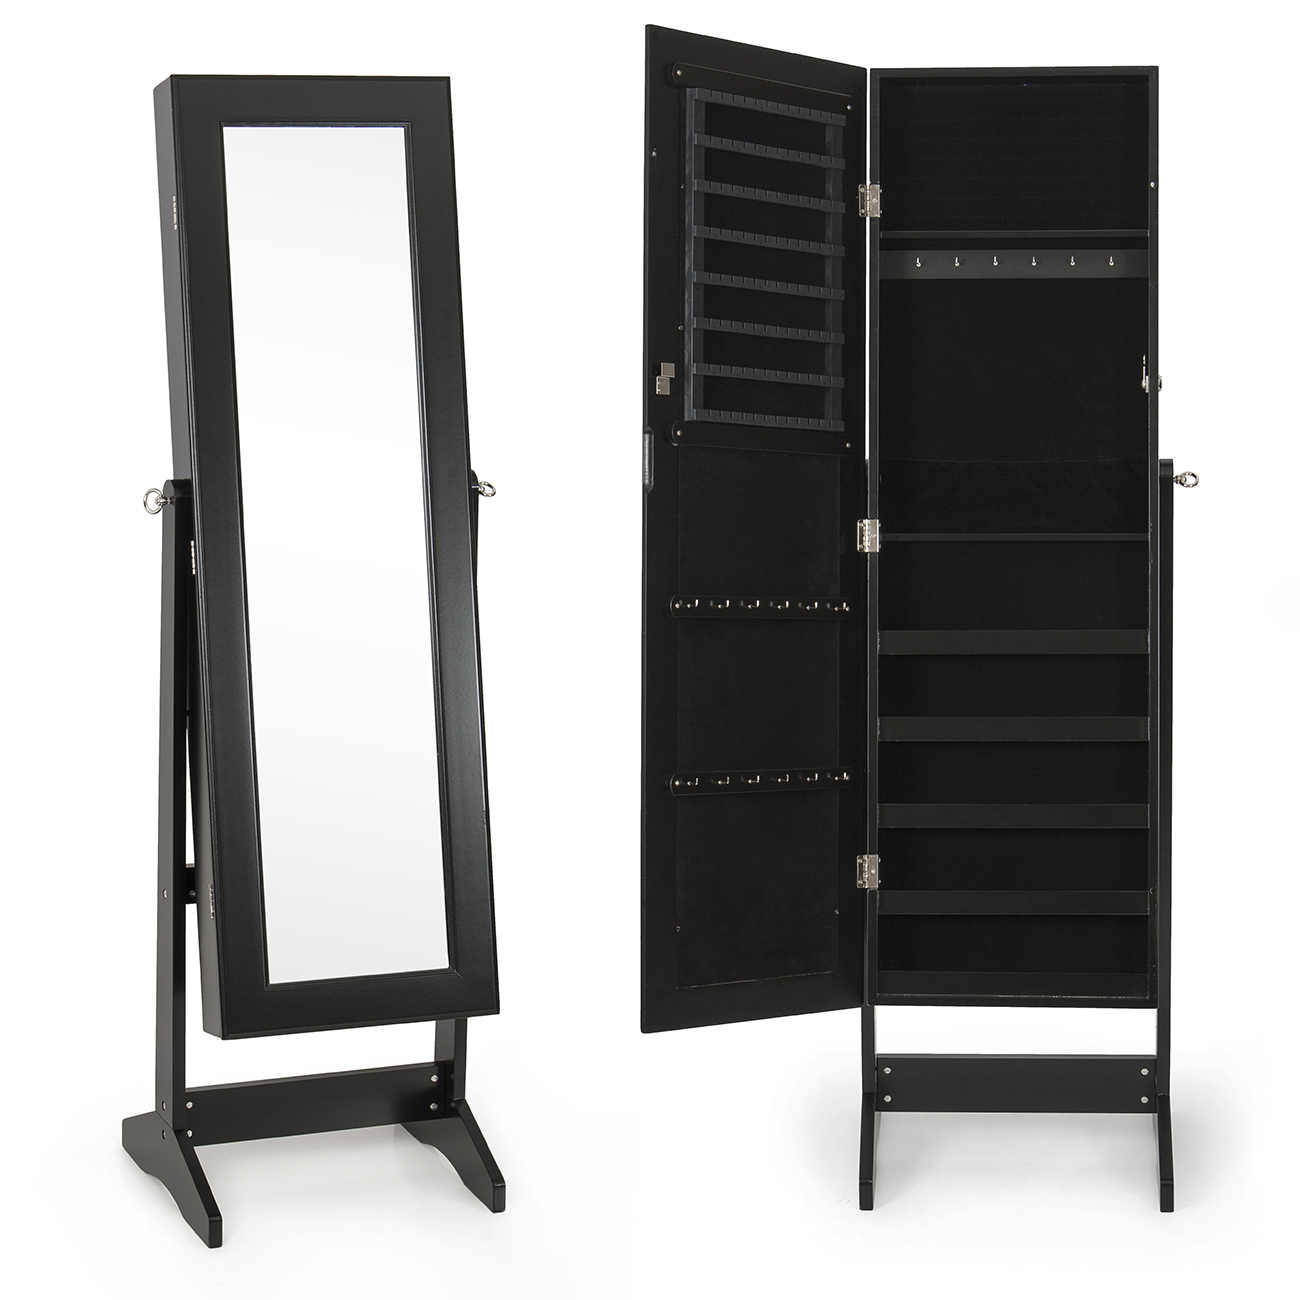 New Mirrored Jewelry Cabinet Mirror W Stand Organizer